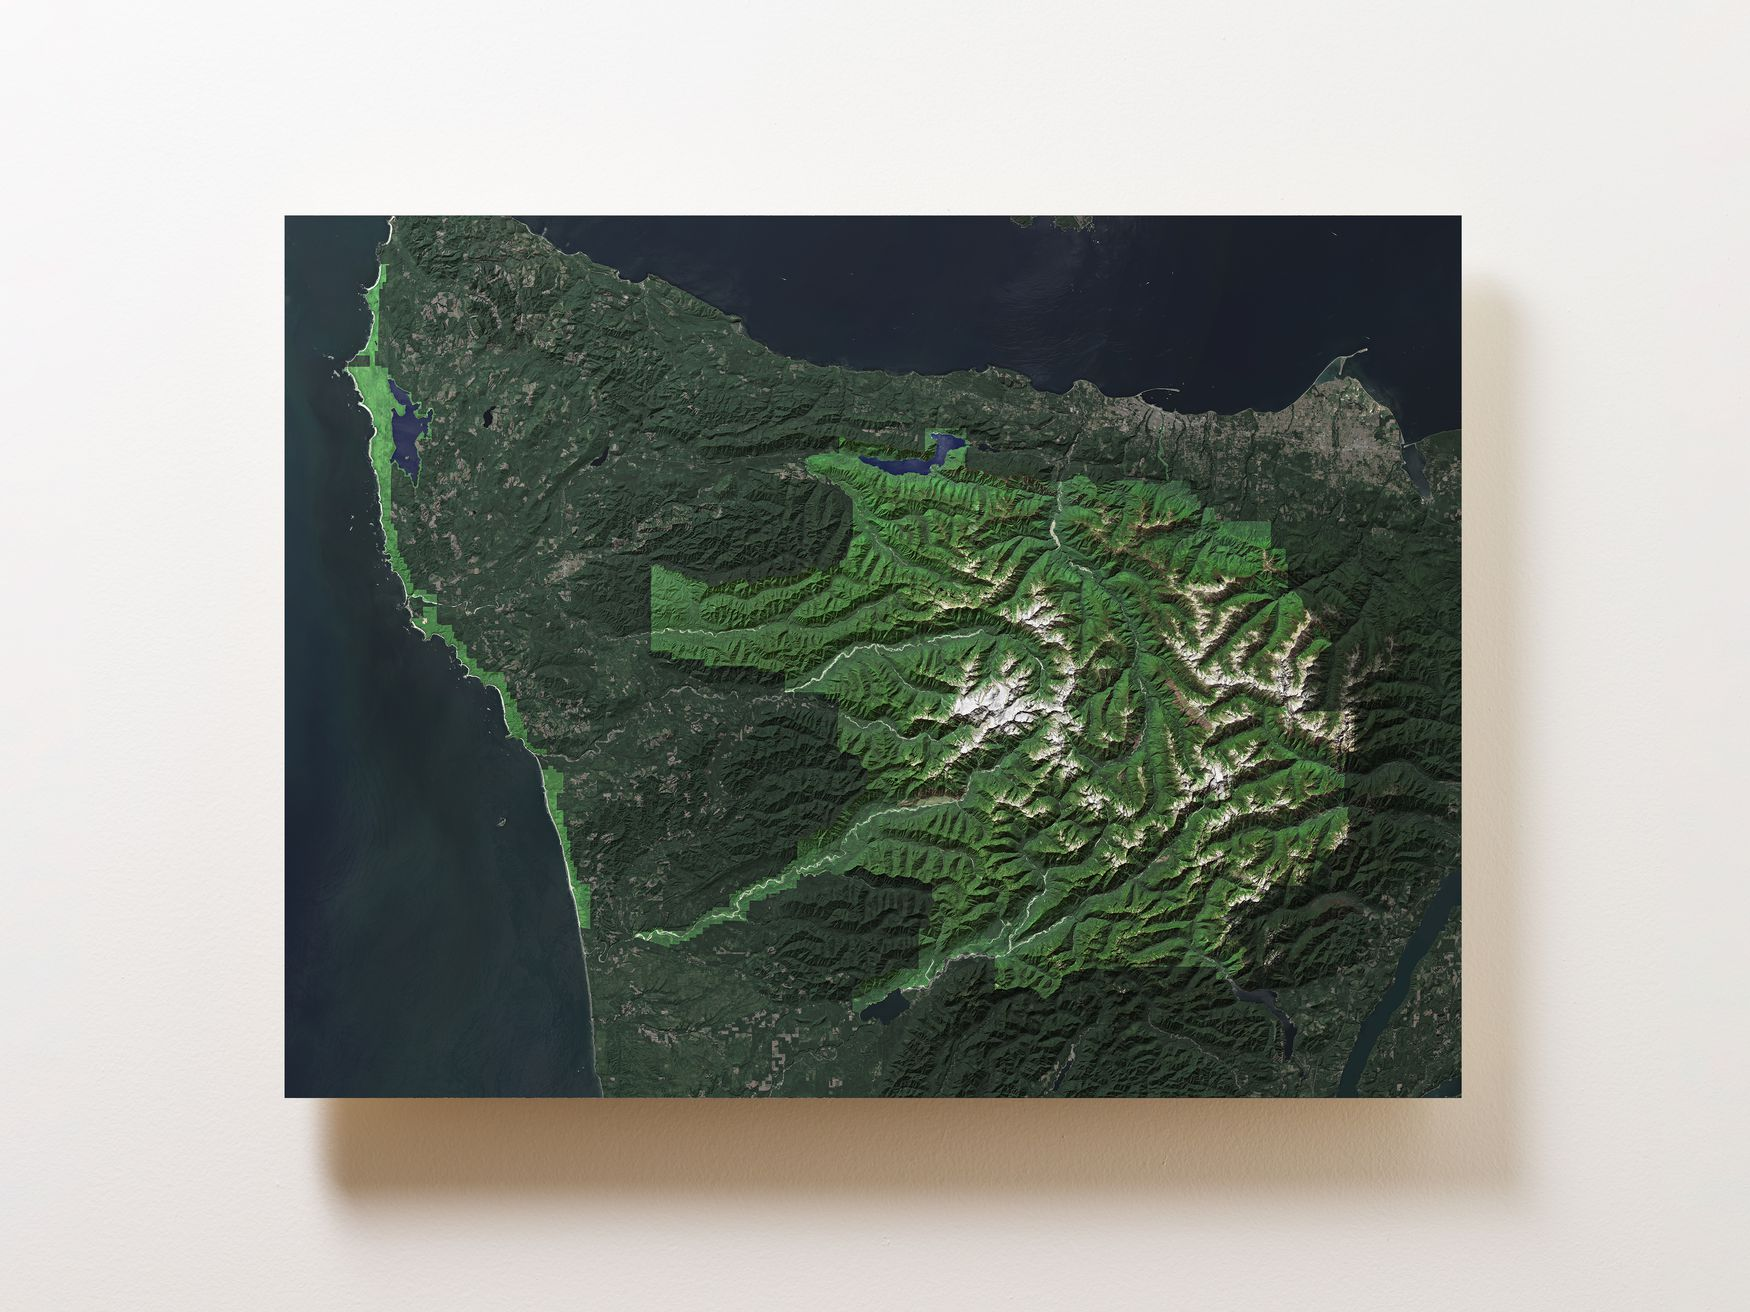 Olympic National Park Wall Map